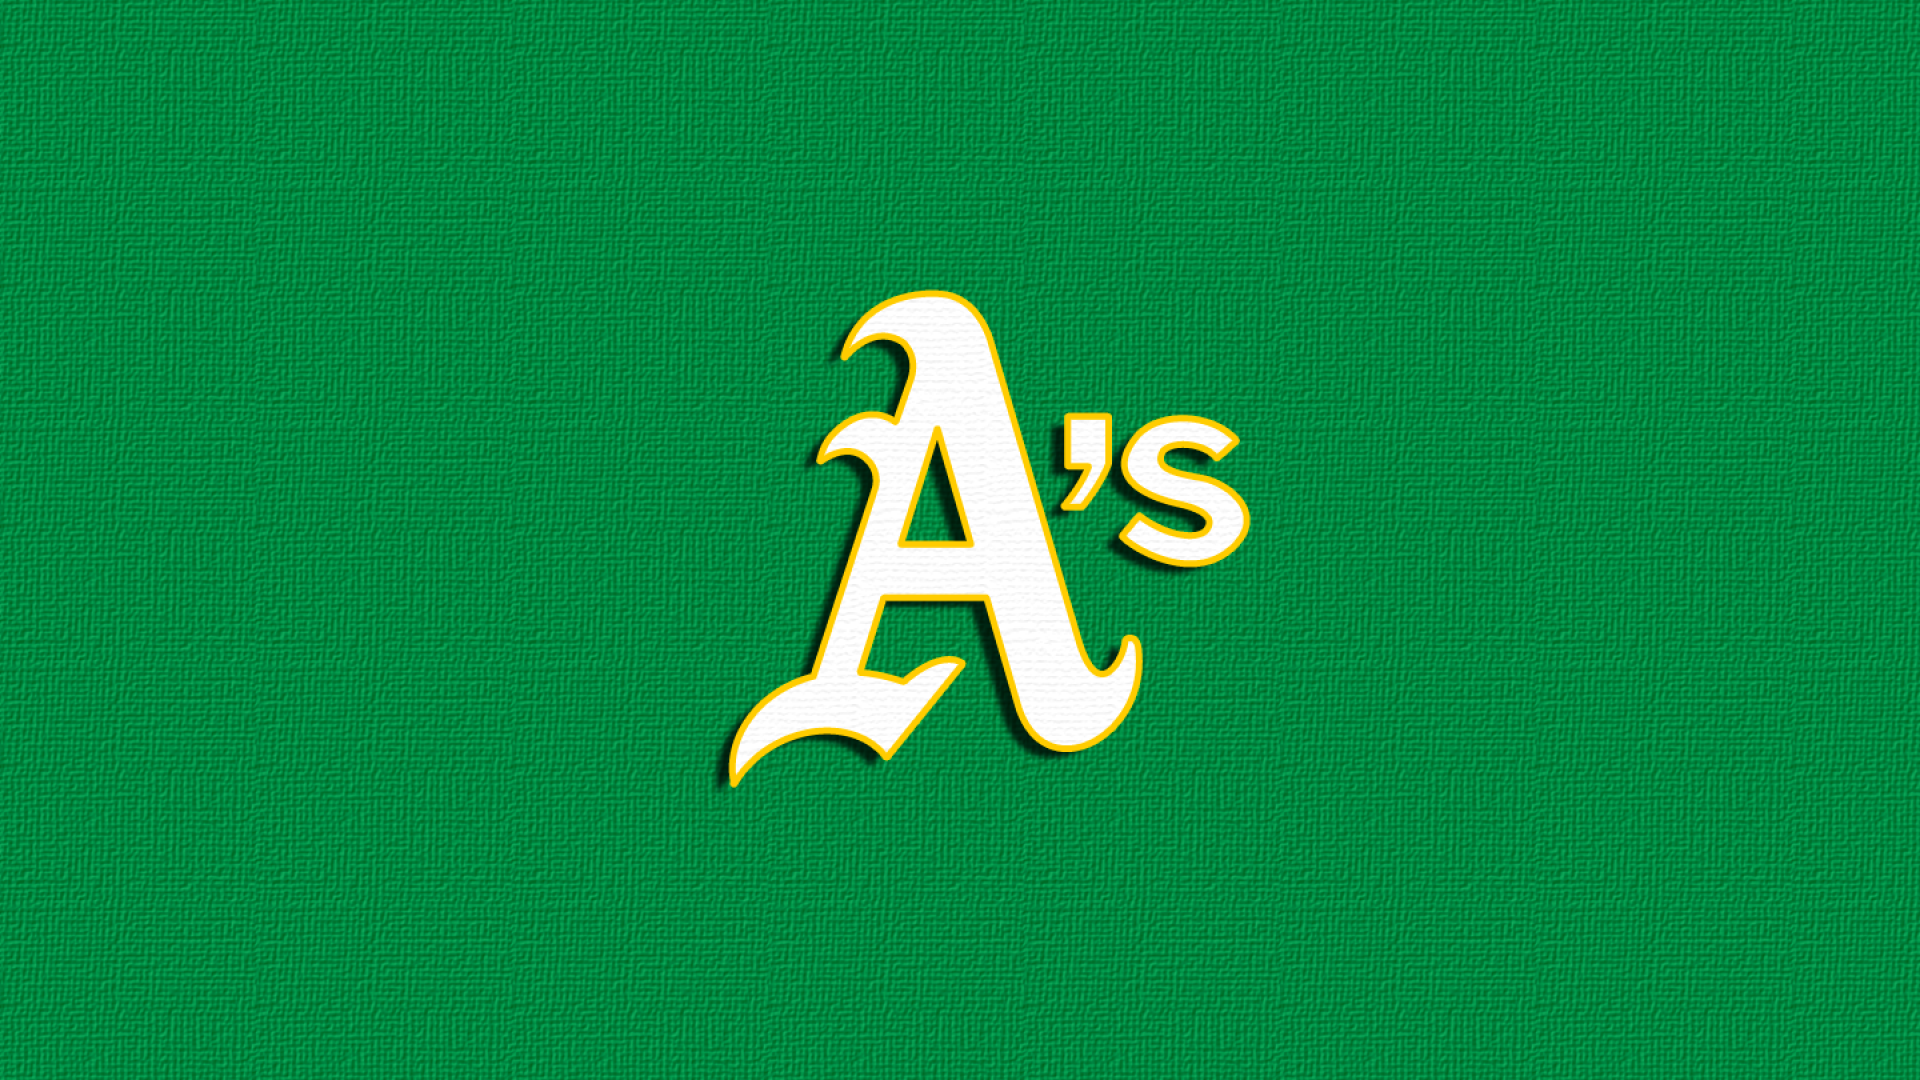 Athletics Wallpapers 1920x1080